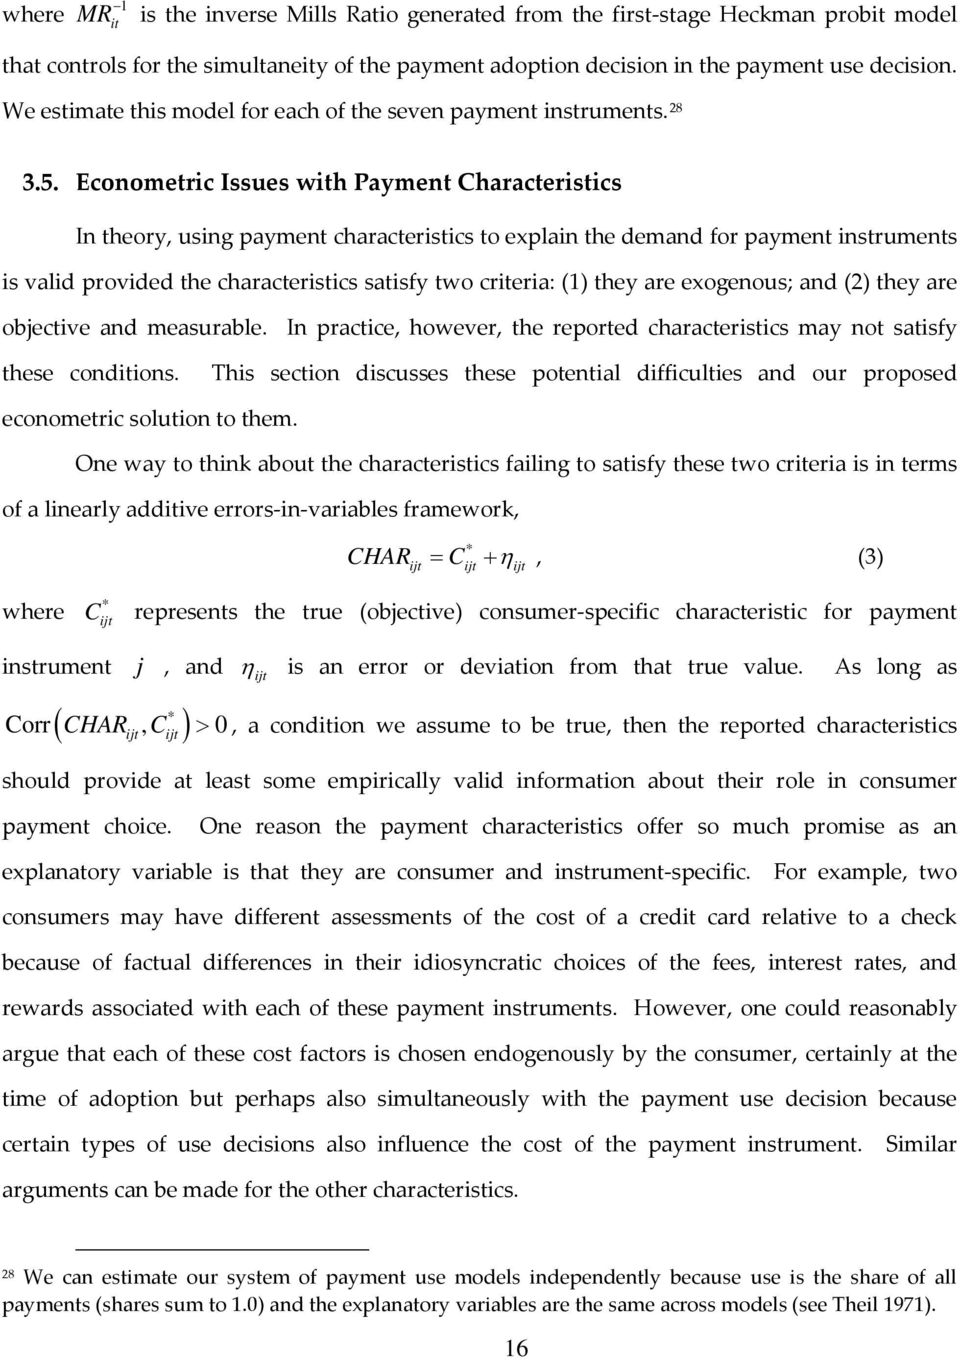 Econometric Issues with Payment Characteristics In theory, using payment characteristics to explain the demand for payment instruments is valid provided the characteristics satisfy two criteria: (1)